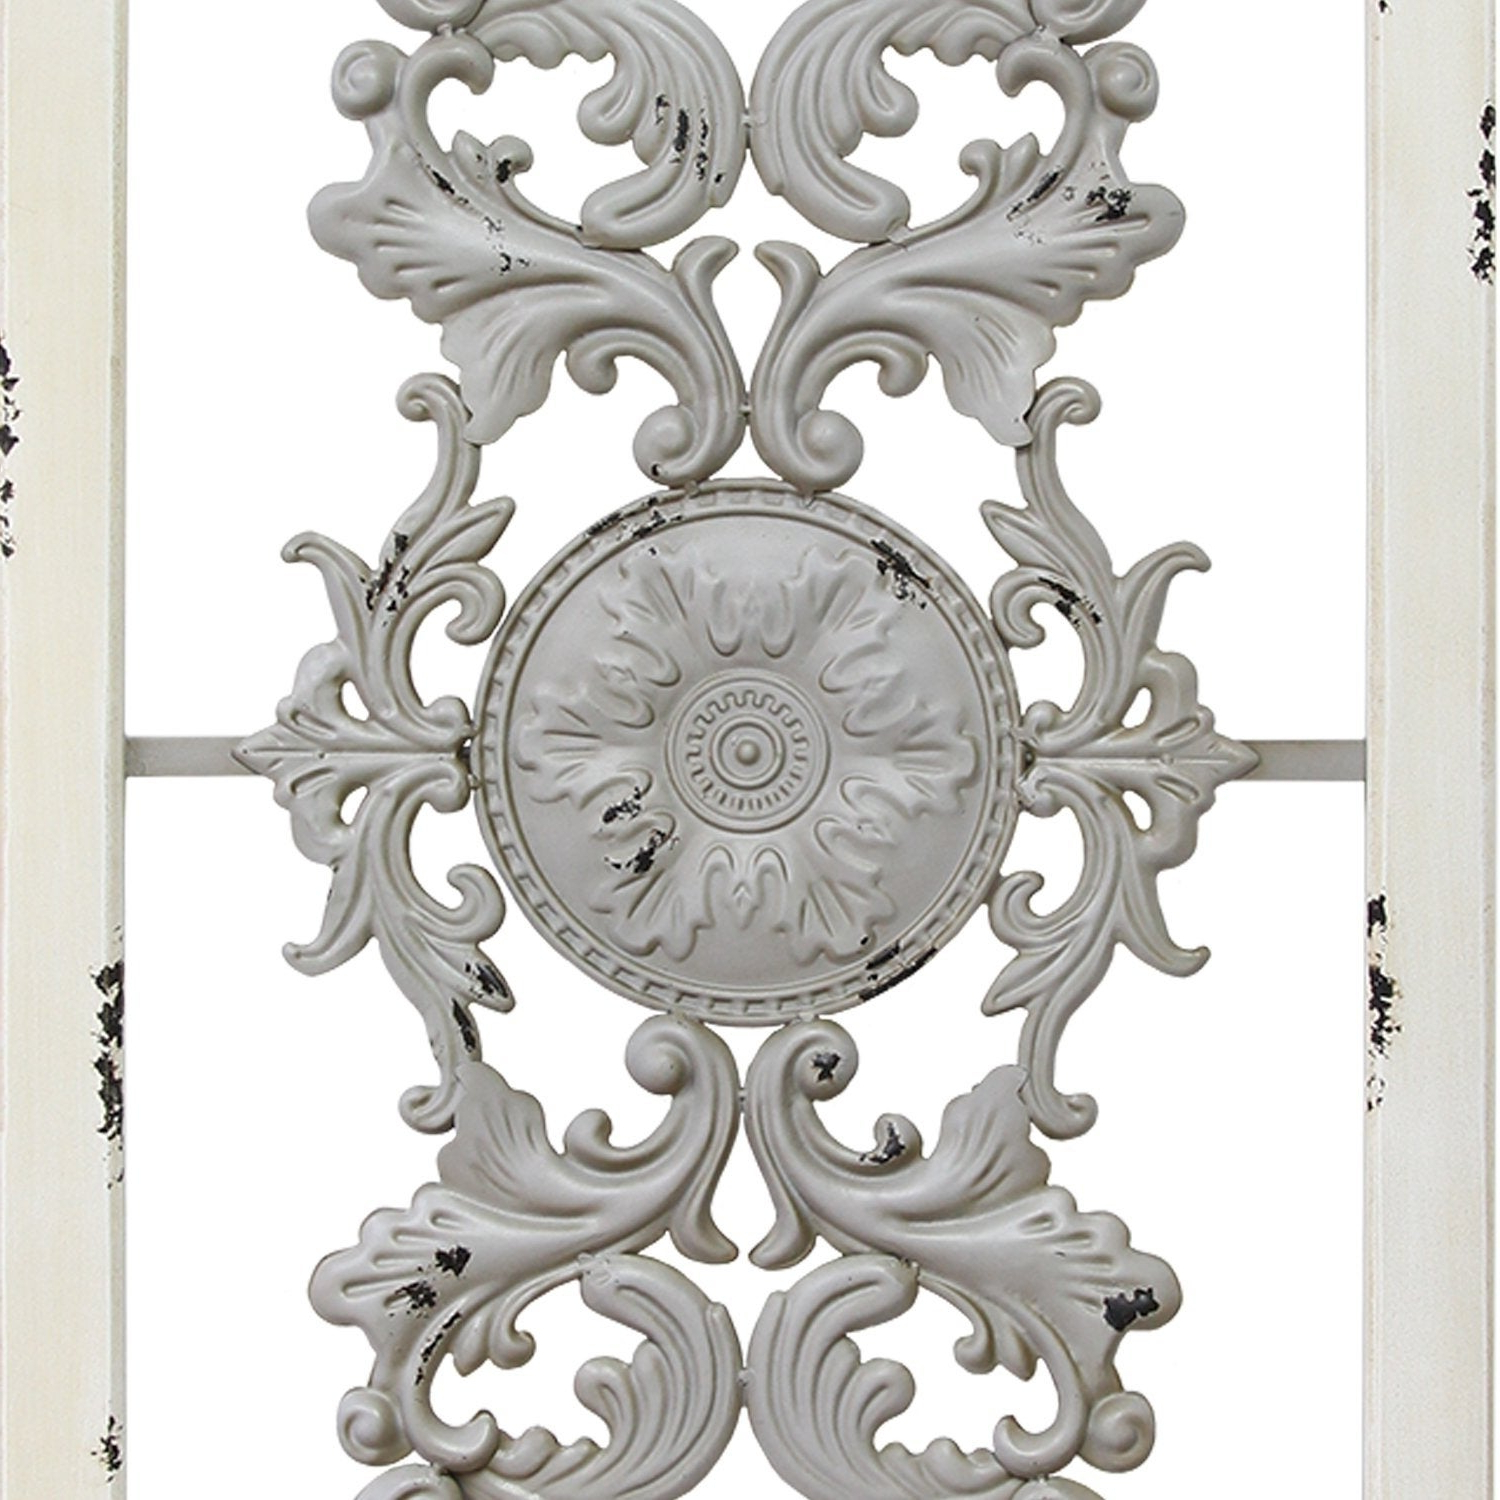 Scroll Panel Wall Decor Regarding Most Recently Released Shop Stratton Home Decor Grey Scroll Panel Wall Decor – Free (Gallery 11 of 20)